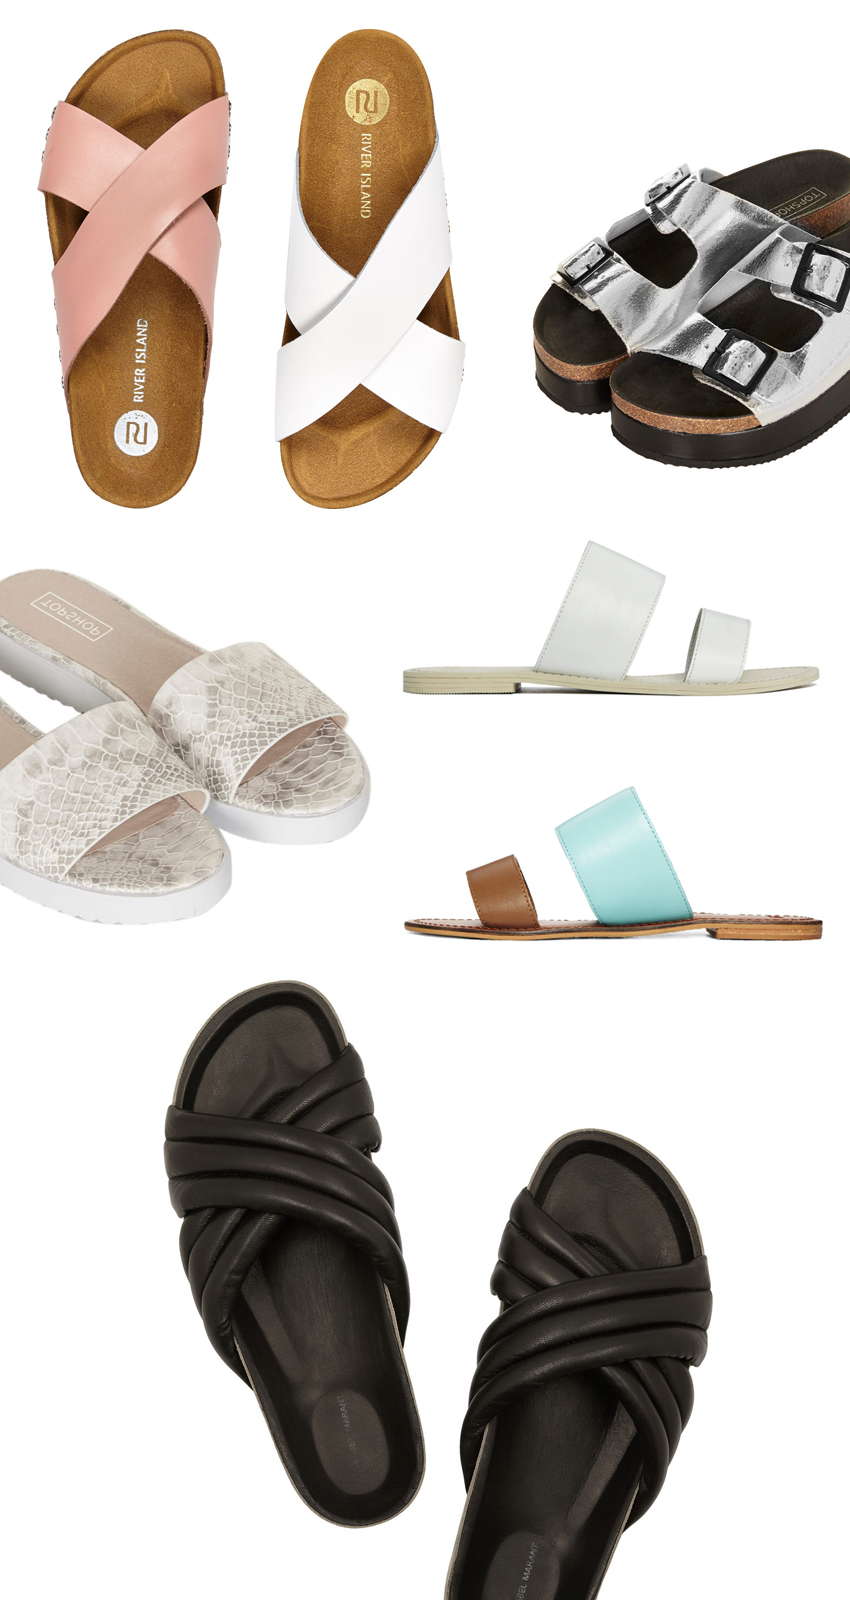 Birkenstock alternatives